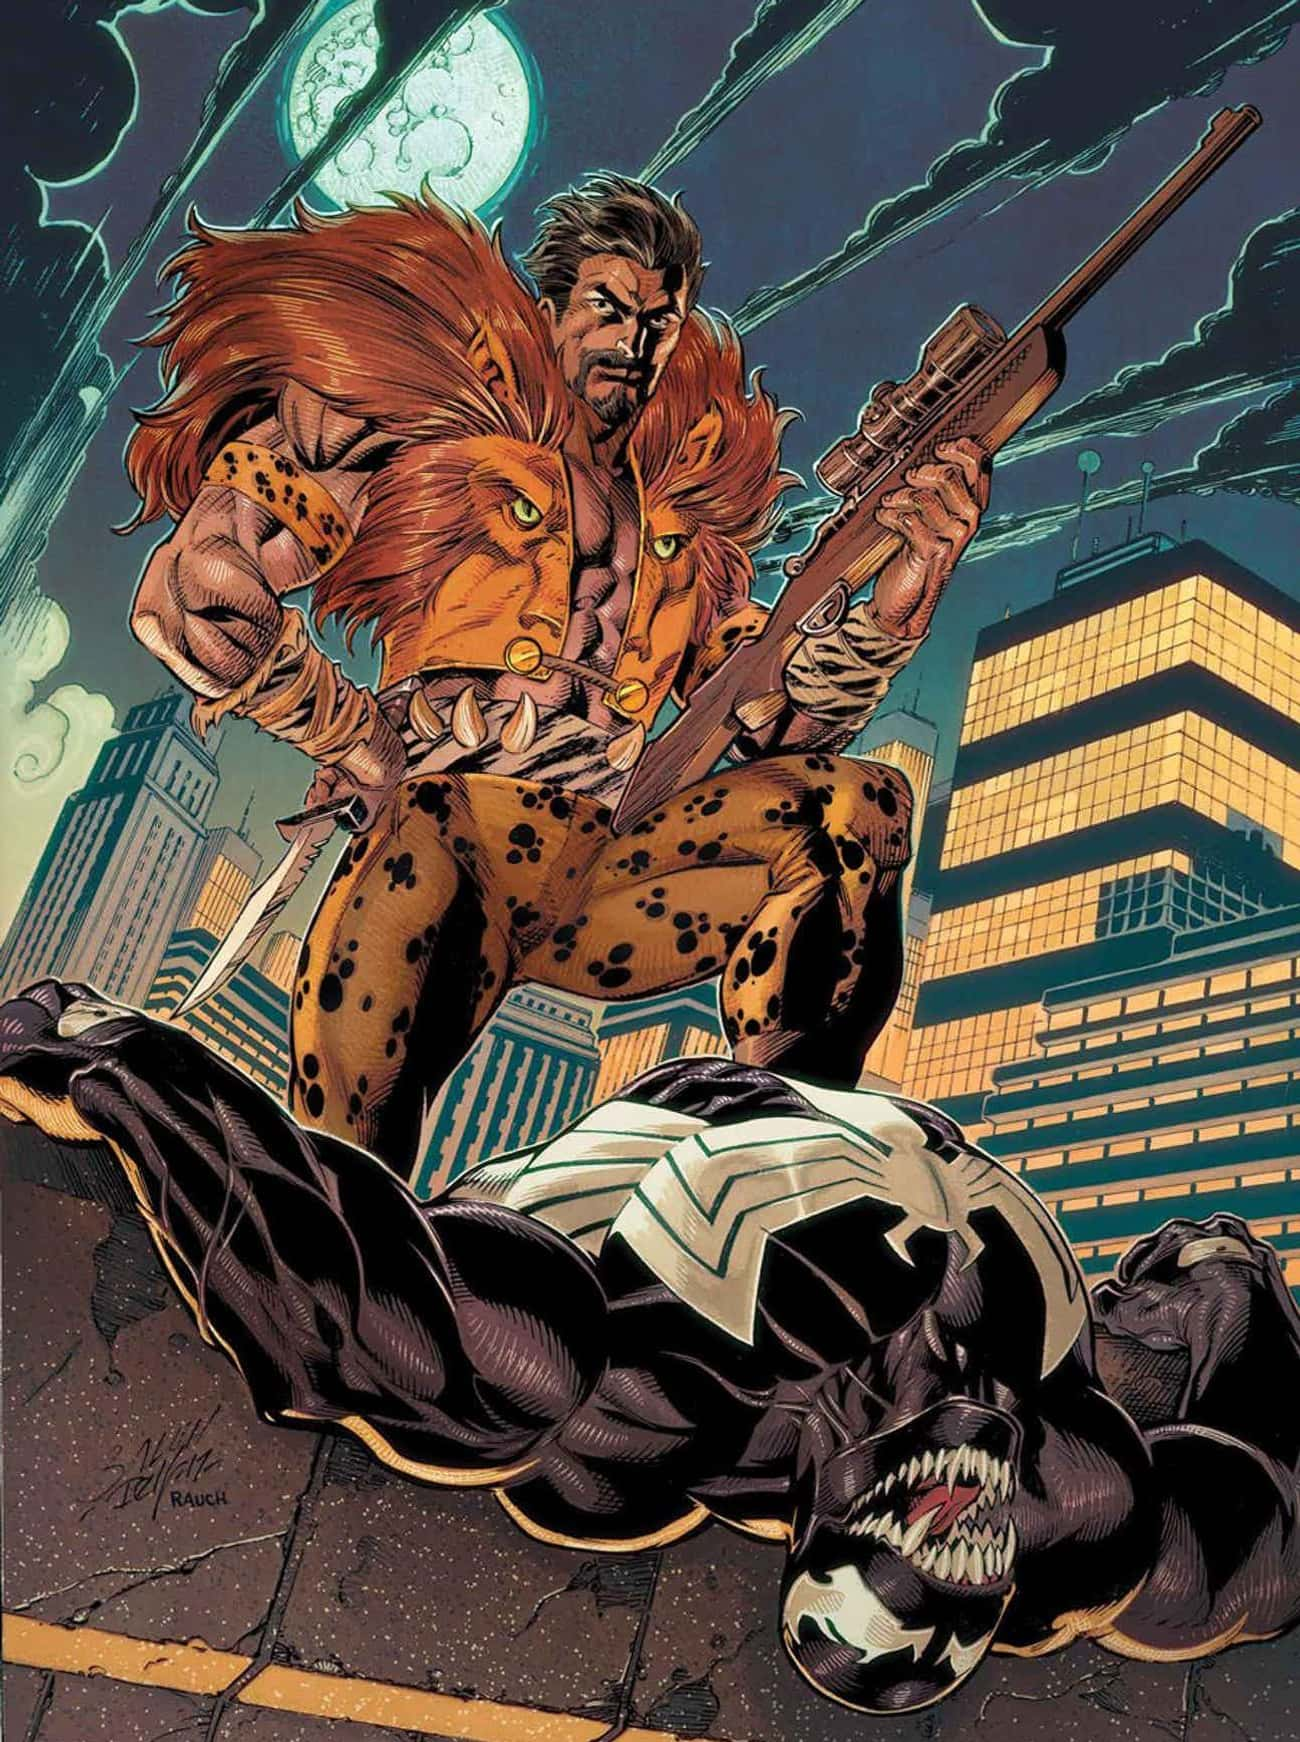 Kraven The Hunter, Spider-Man' is listed (or ranked) 3 on the list The Biggest Superheroes And Villains Who Have Never Appeared In Live-Action